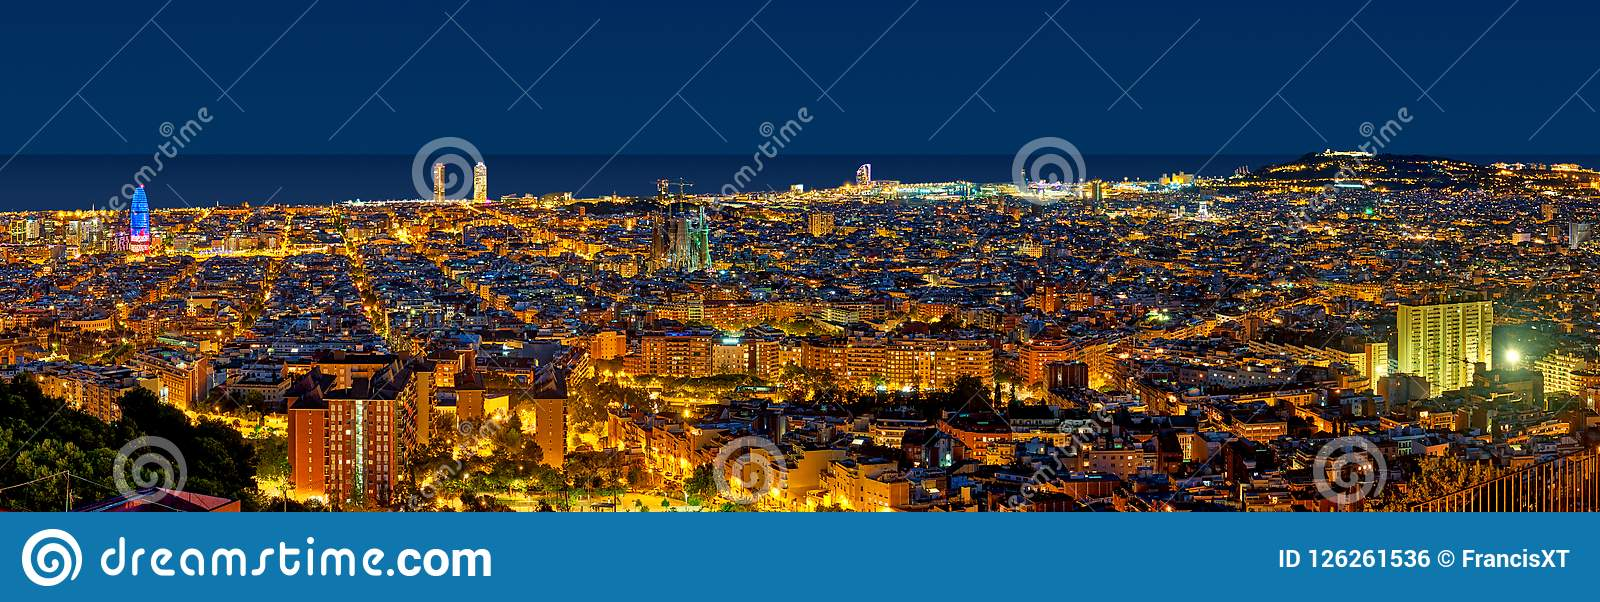 Barcelona skyline at night looking towards the sea